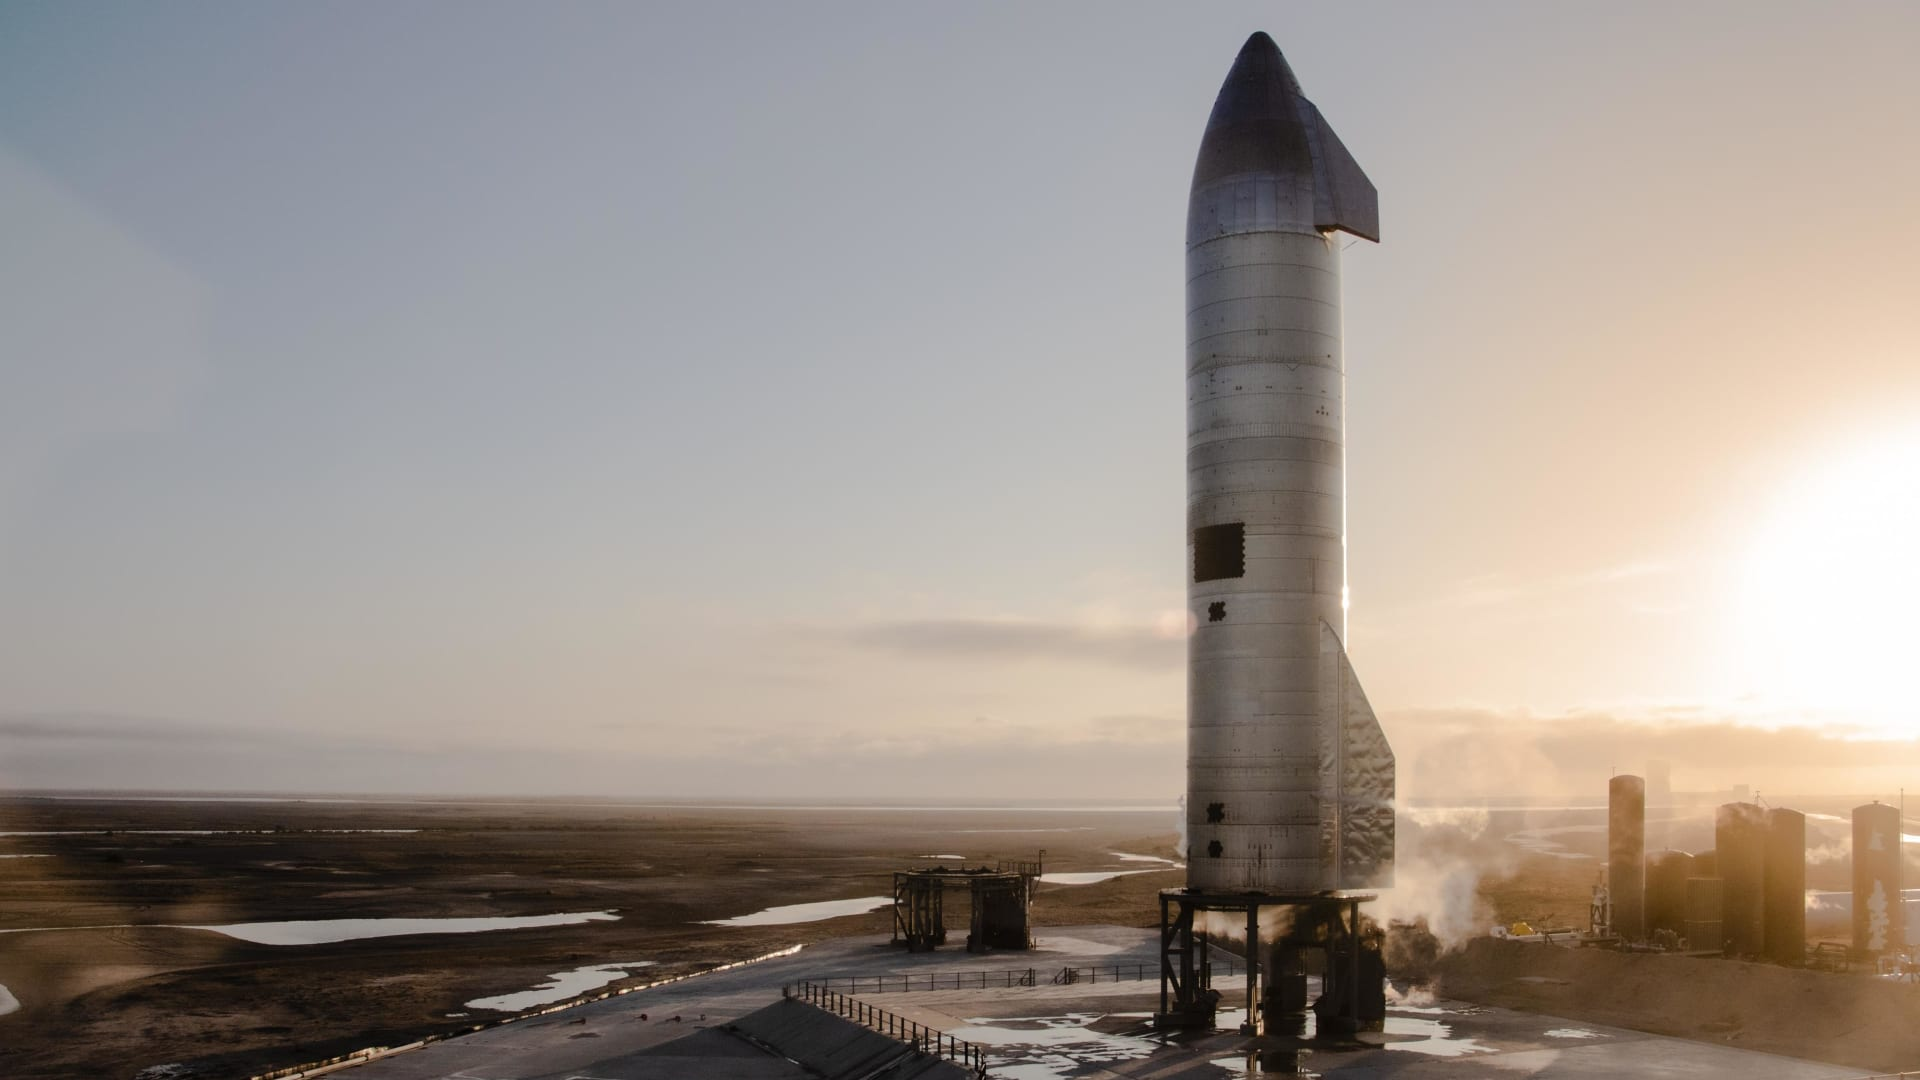 Starship prototype rocket SN10 stands on the launchpad at the company's facility in Boca Chica, Texas.